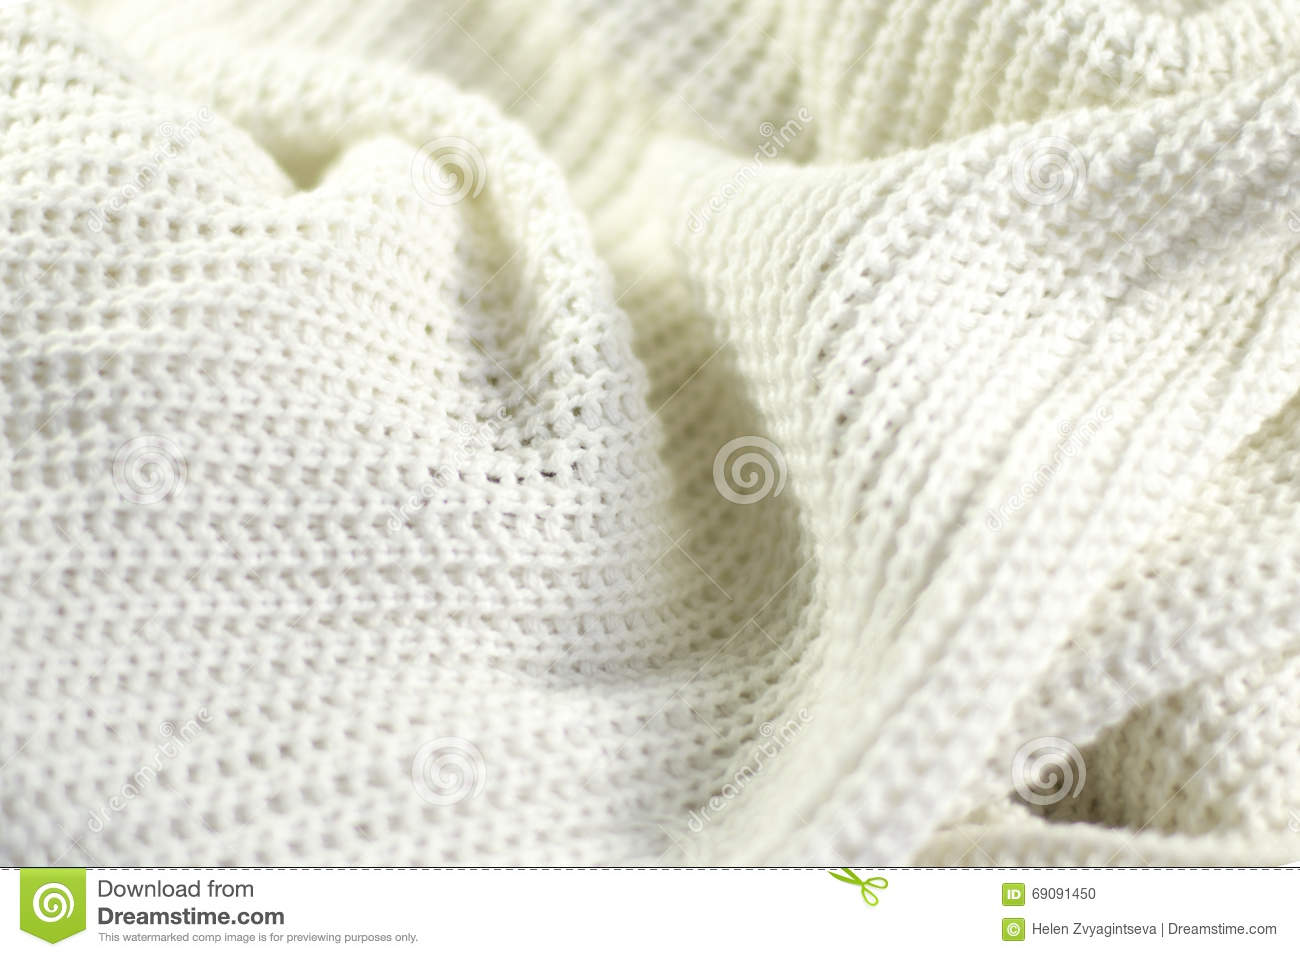 Fragment of a wrinkled knitted white